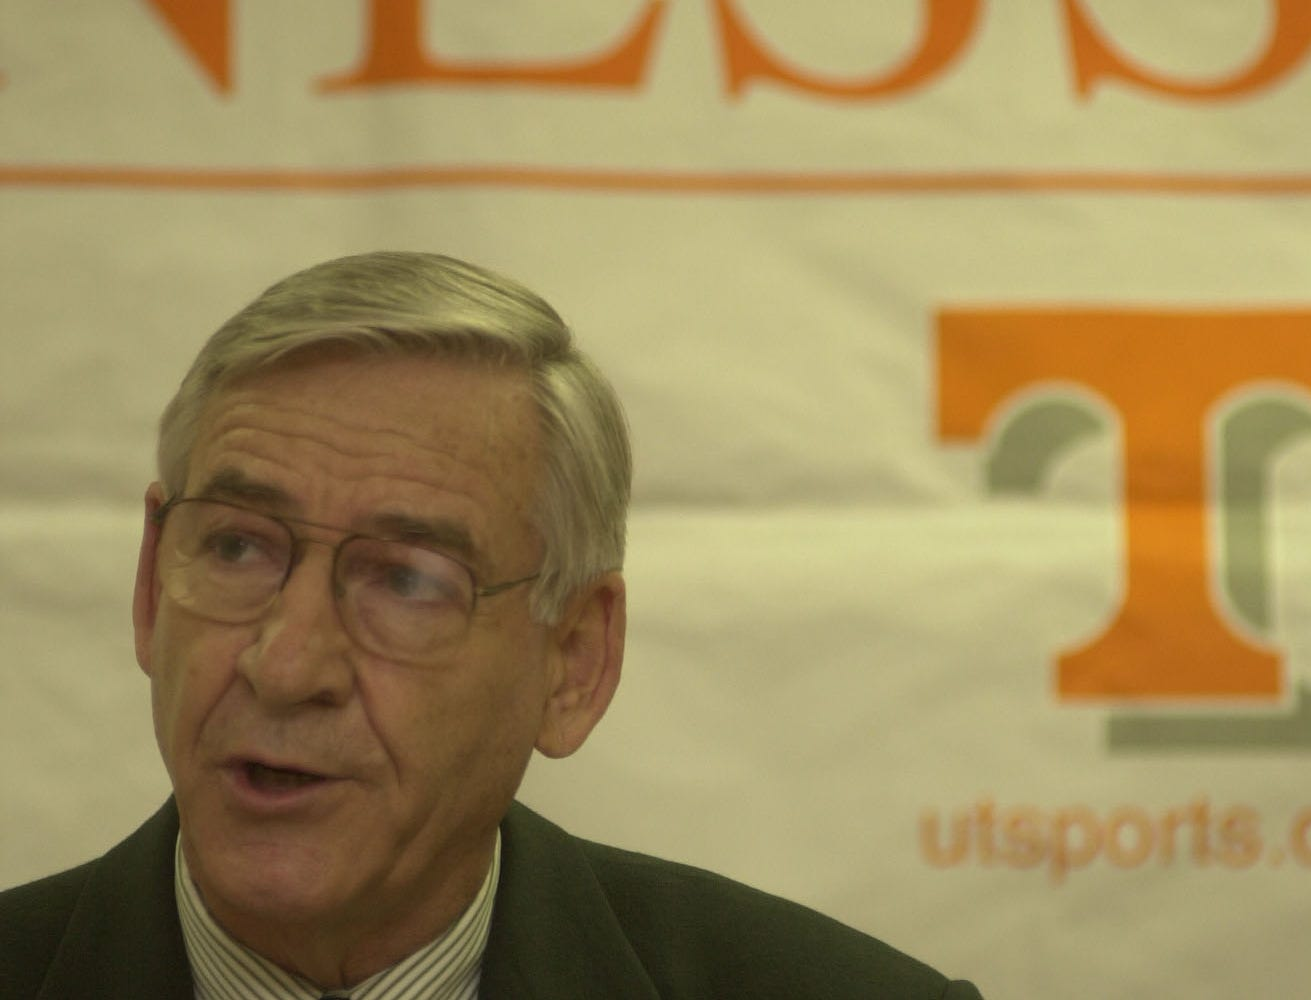 UT Athletic Director Doug Dickey responds to recent media reports of the UT Basketball Program and the incident with Tony Harris charging the basketball court during a February 2 game against Kentucky.